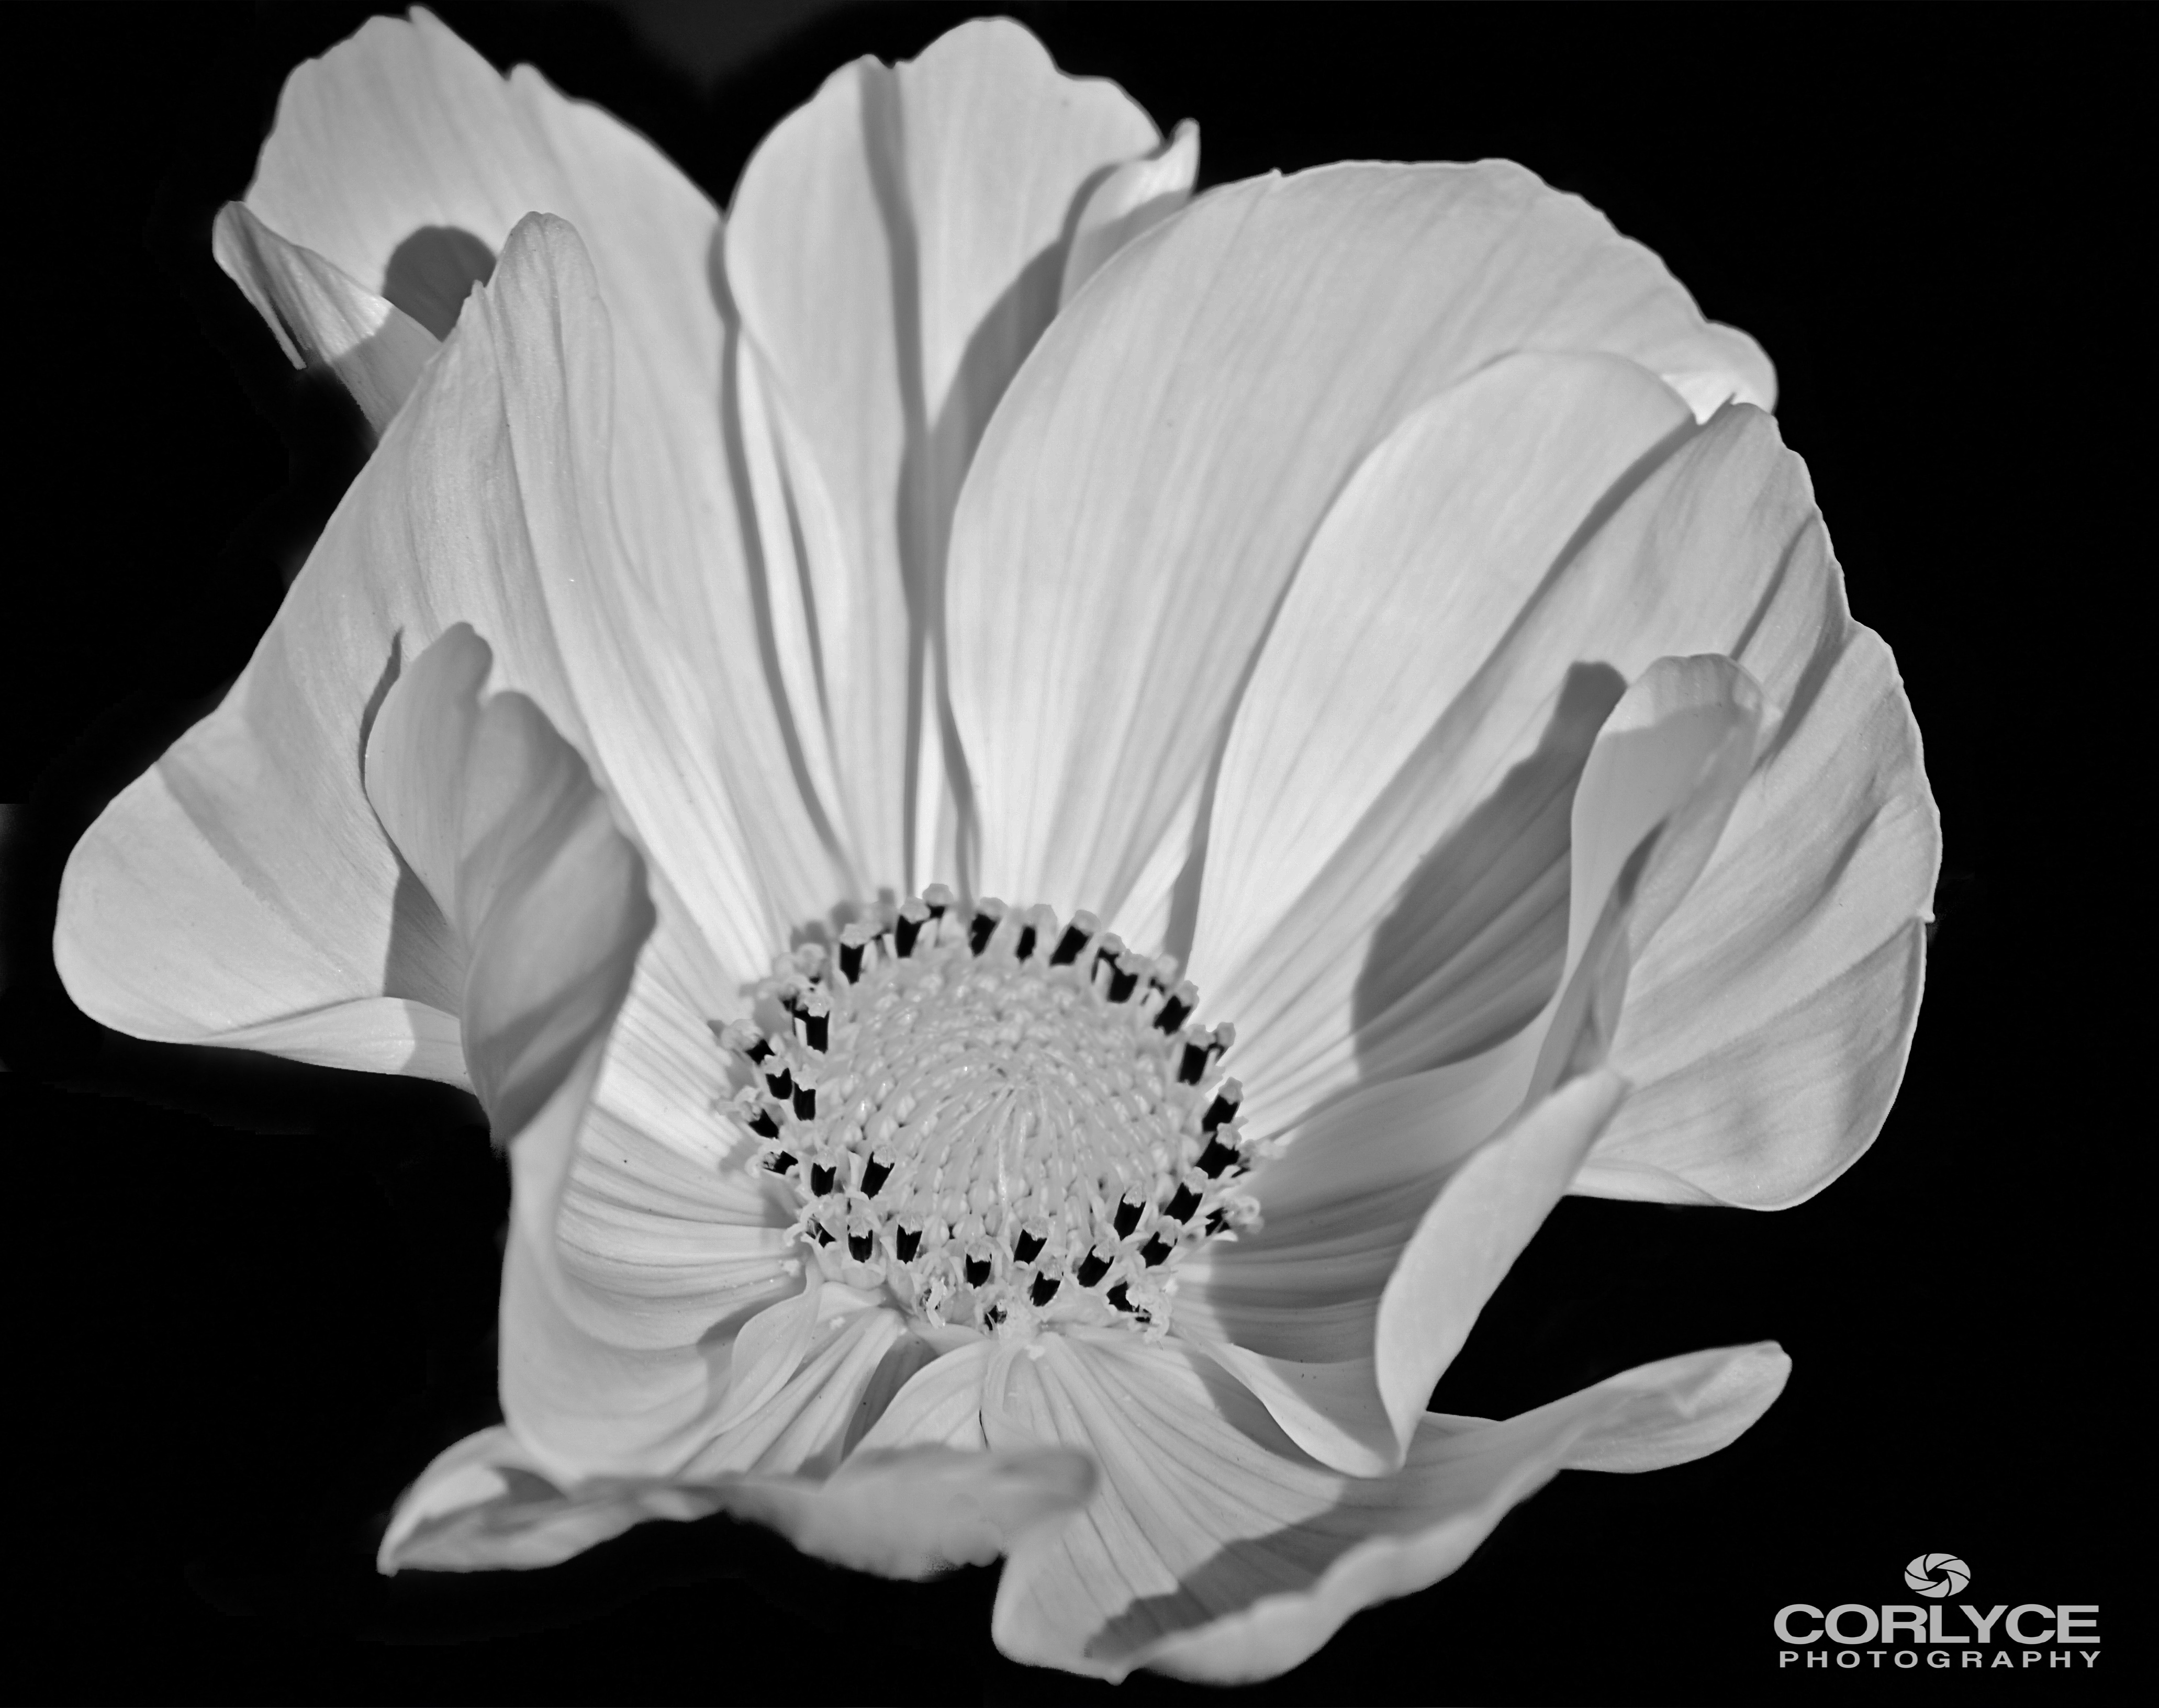 Floral B/W. For Sale on Fine Art America.